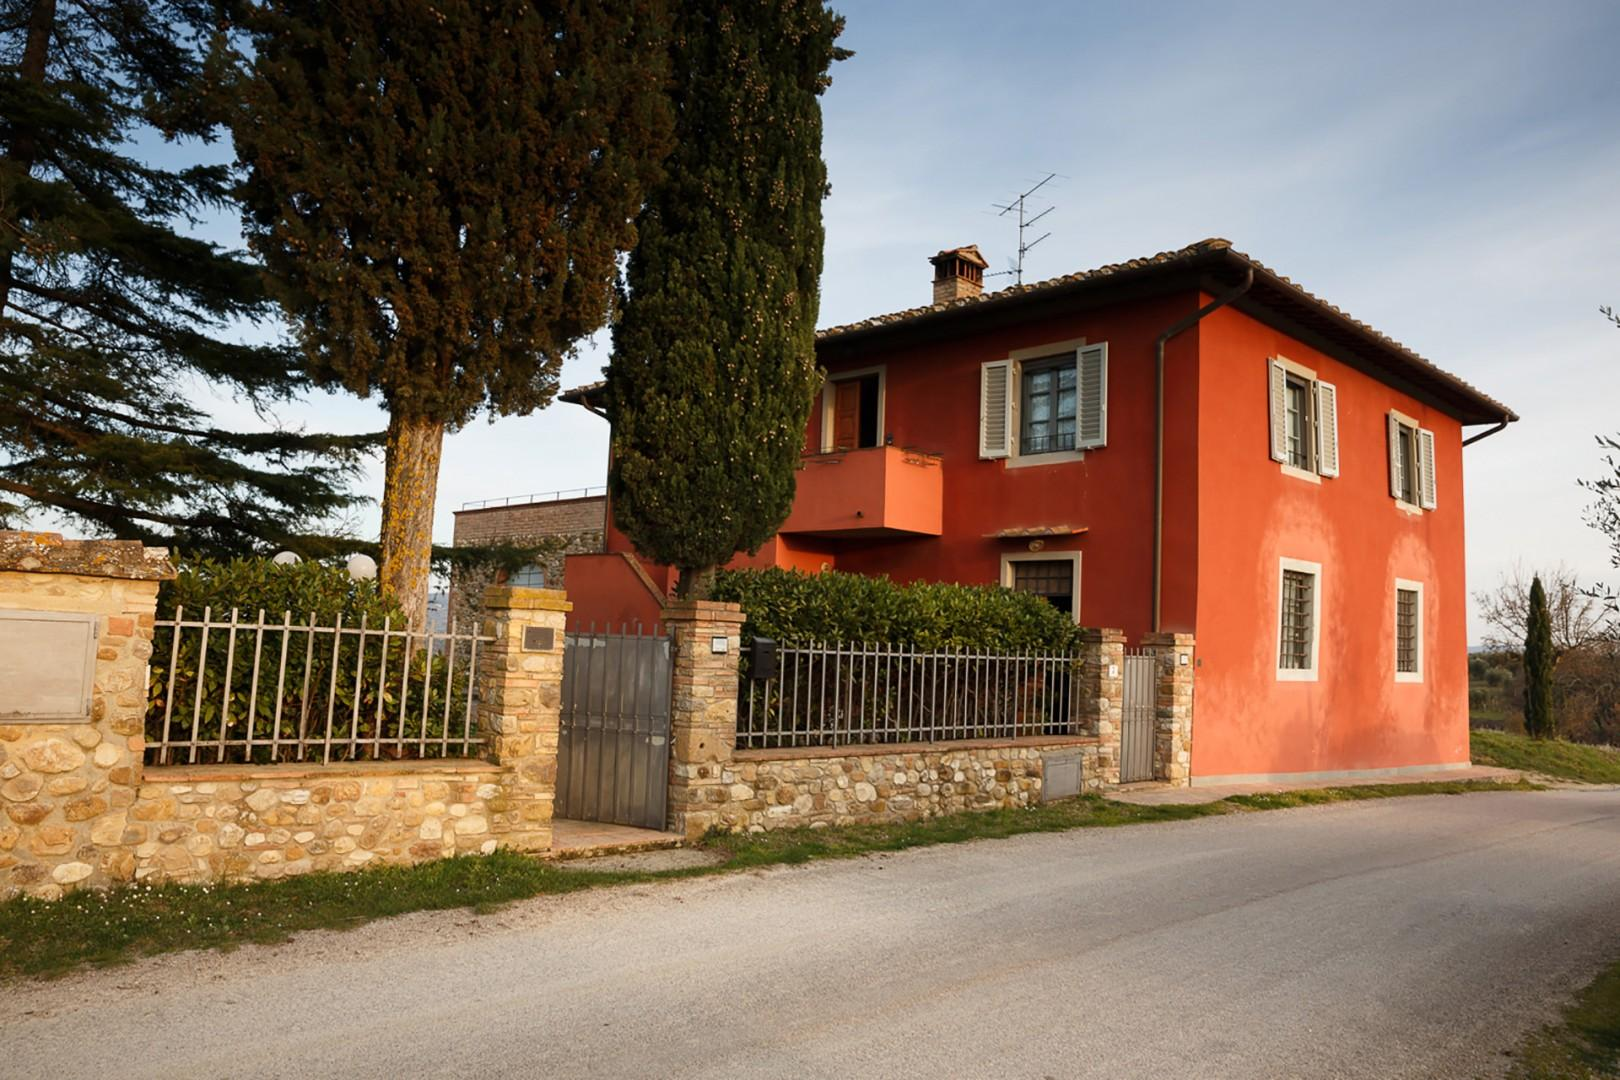 """The aptly named Casa Rossa or """"Red House"""" is a restored farmhouse painted in warm red tones."""